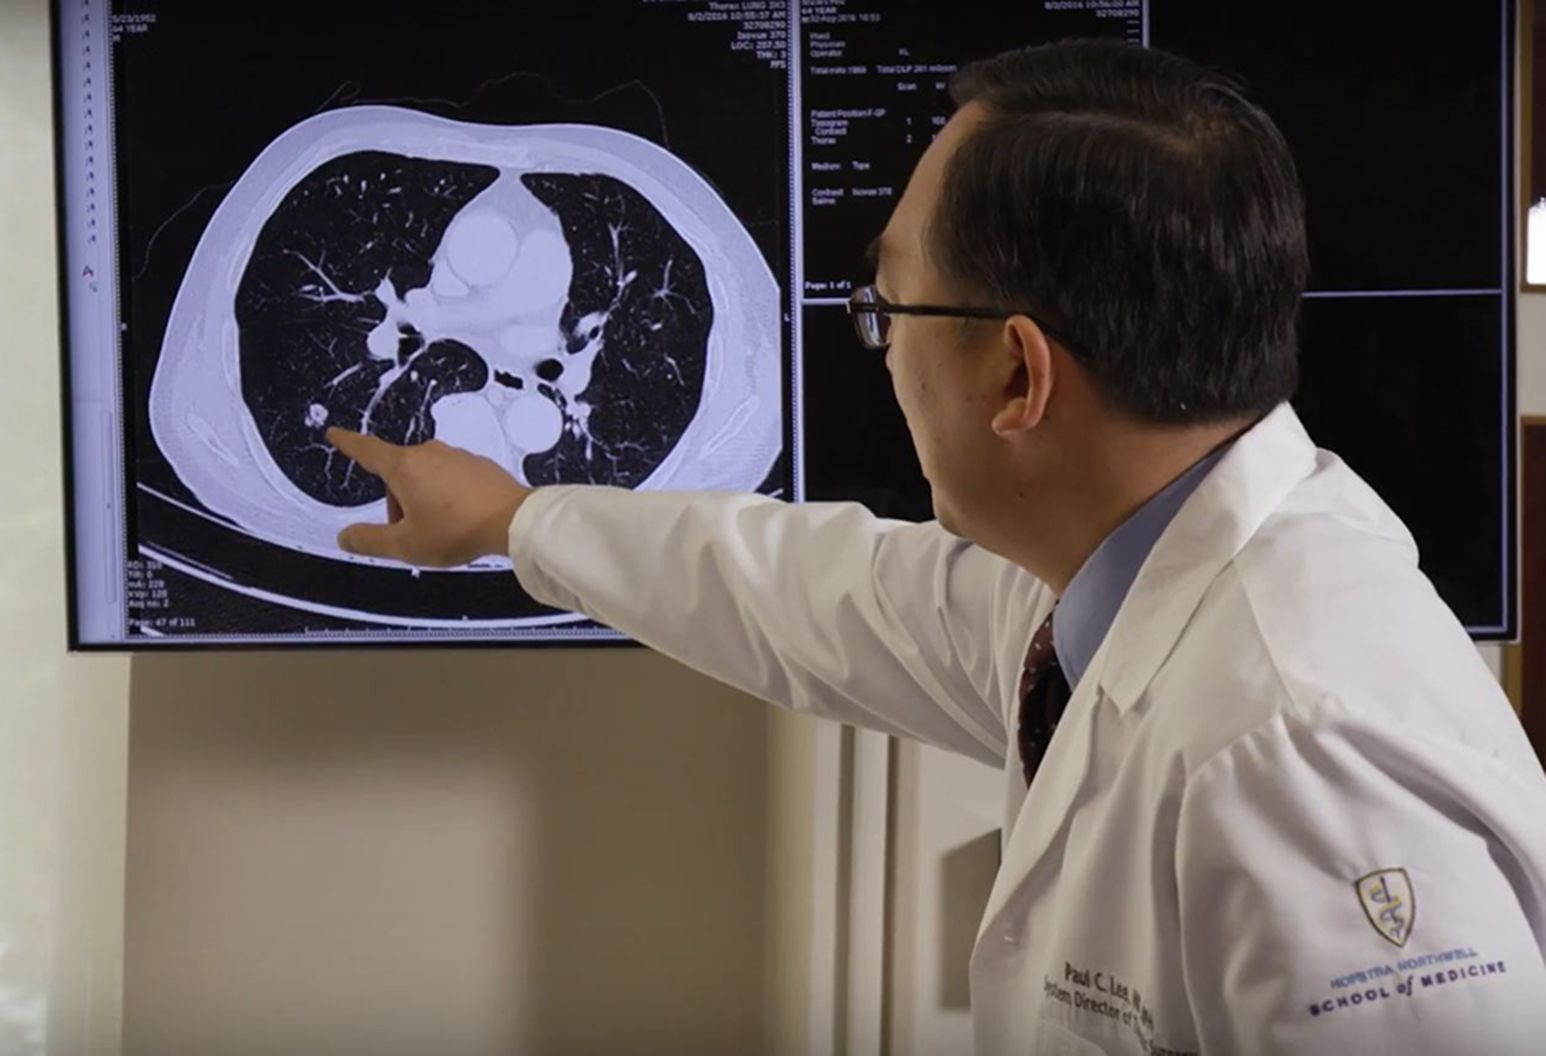 Graduate medical education - For Professionals | Northwell